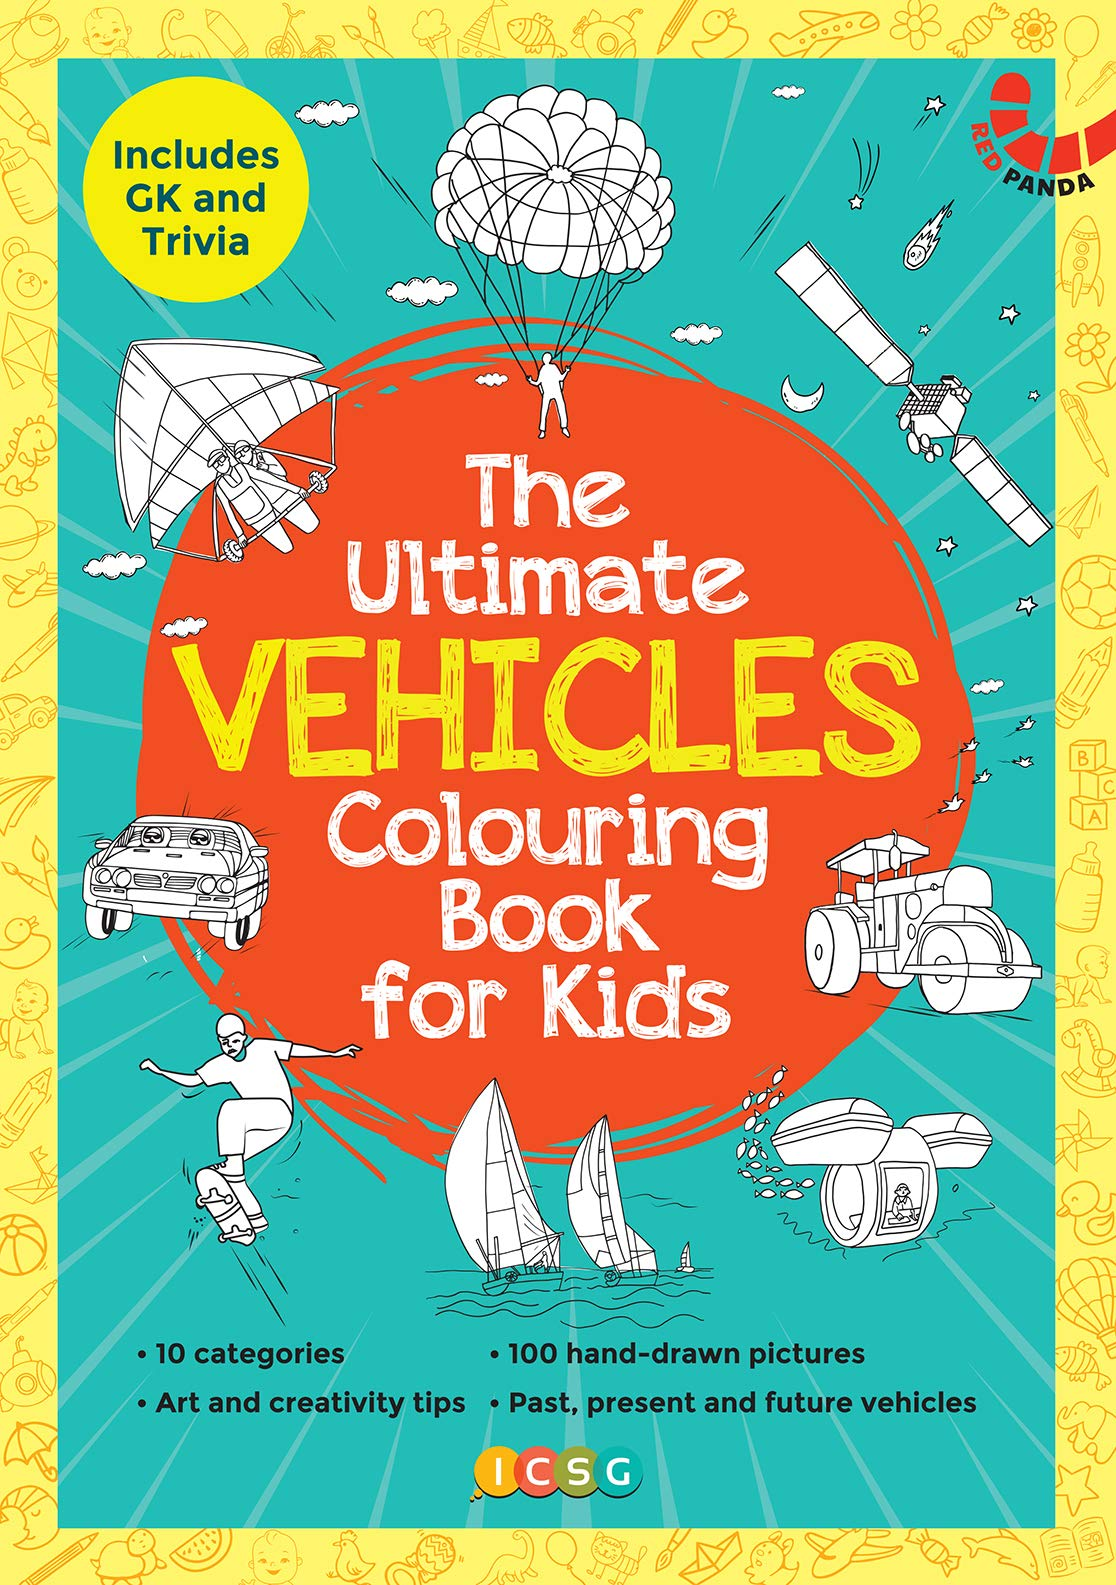 THE ULTIMATE VEHICLE COLOURING BOOK